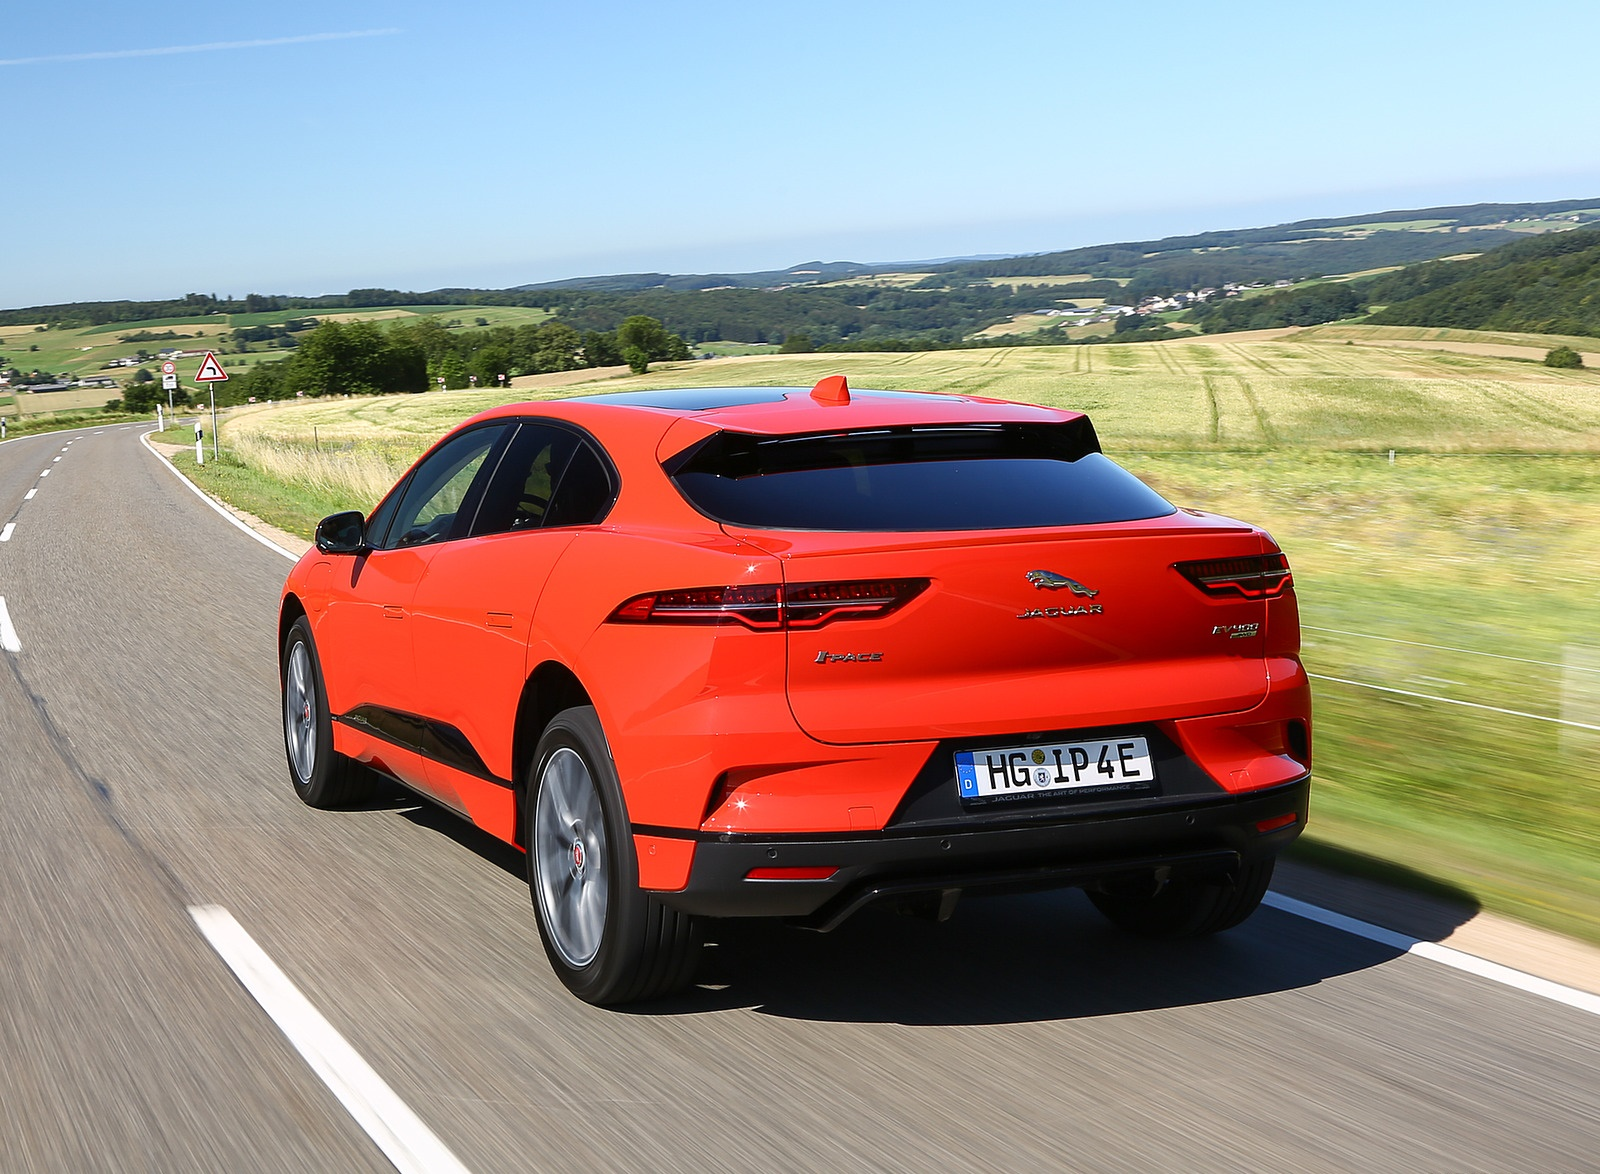 2019 Jaguar I-PACE EV400 AWD HSE First Edition (Color: Photon Red) Rear Three-Quarter Wallpapers #29 of 192